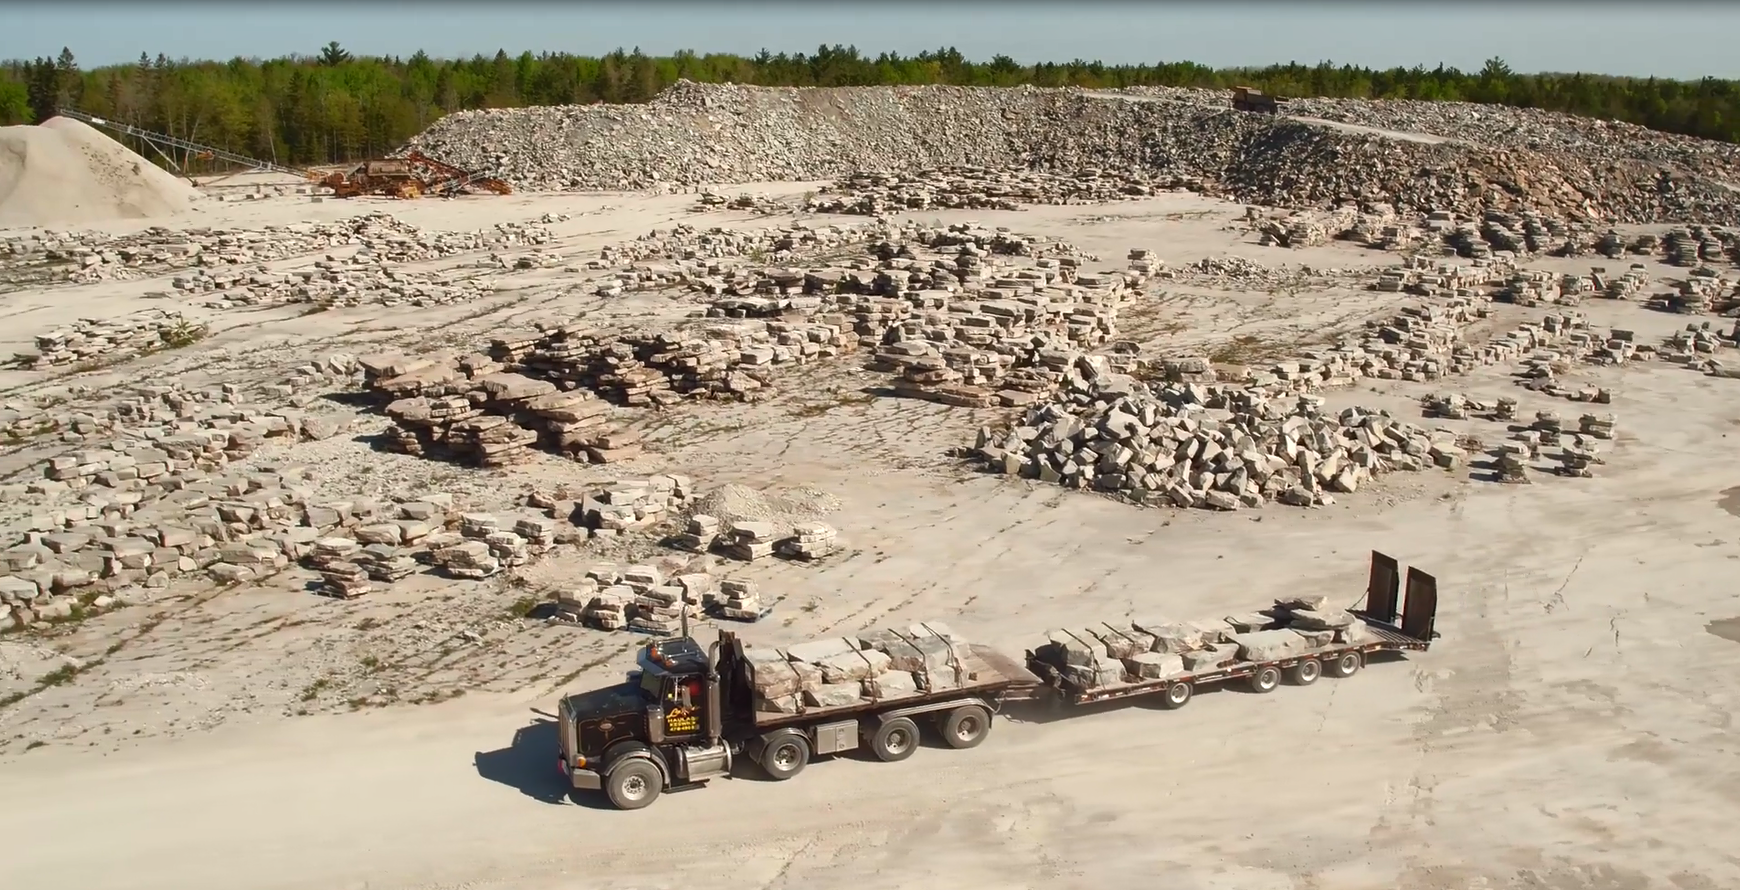 Photo of allstone quarry taken from birds eye view